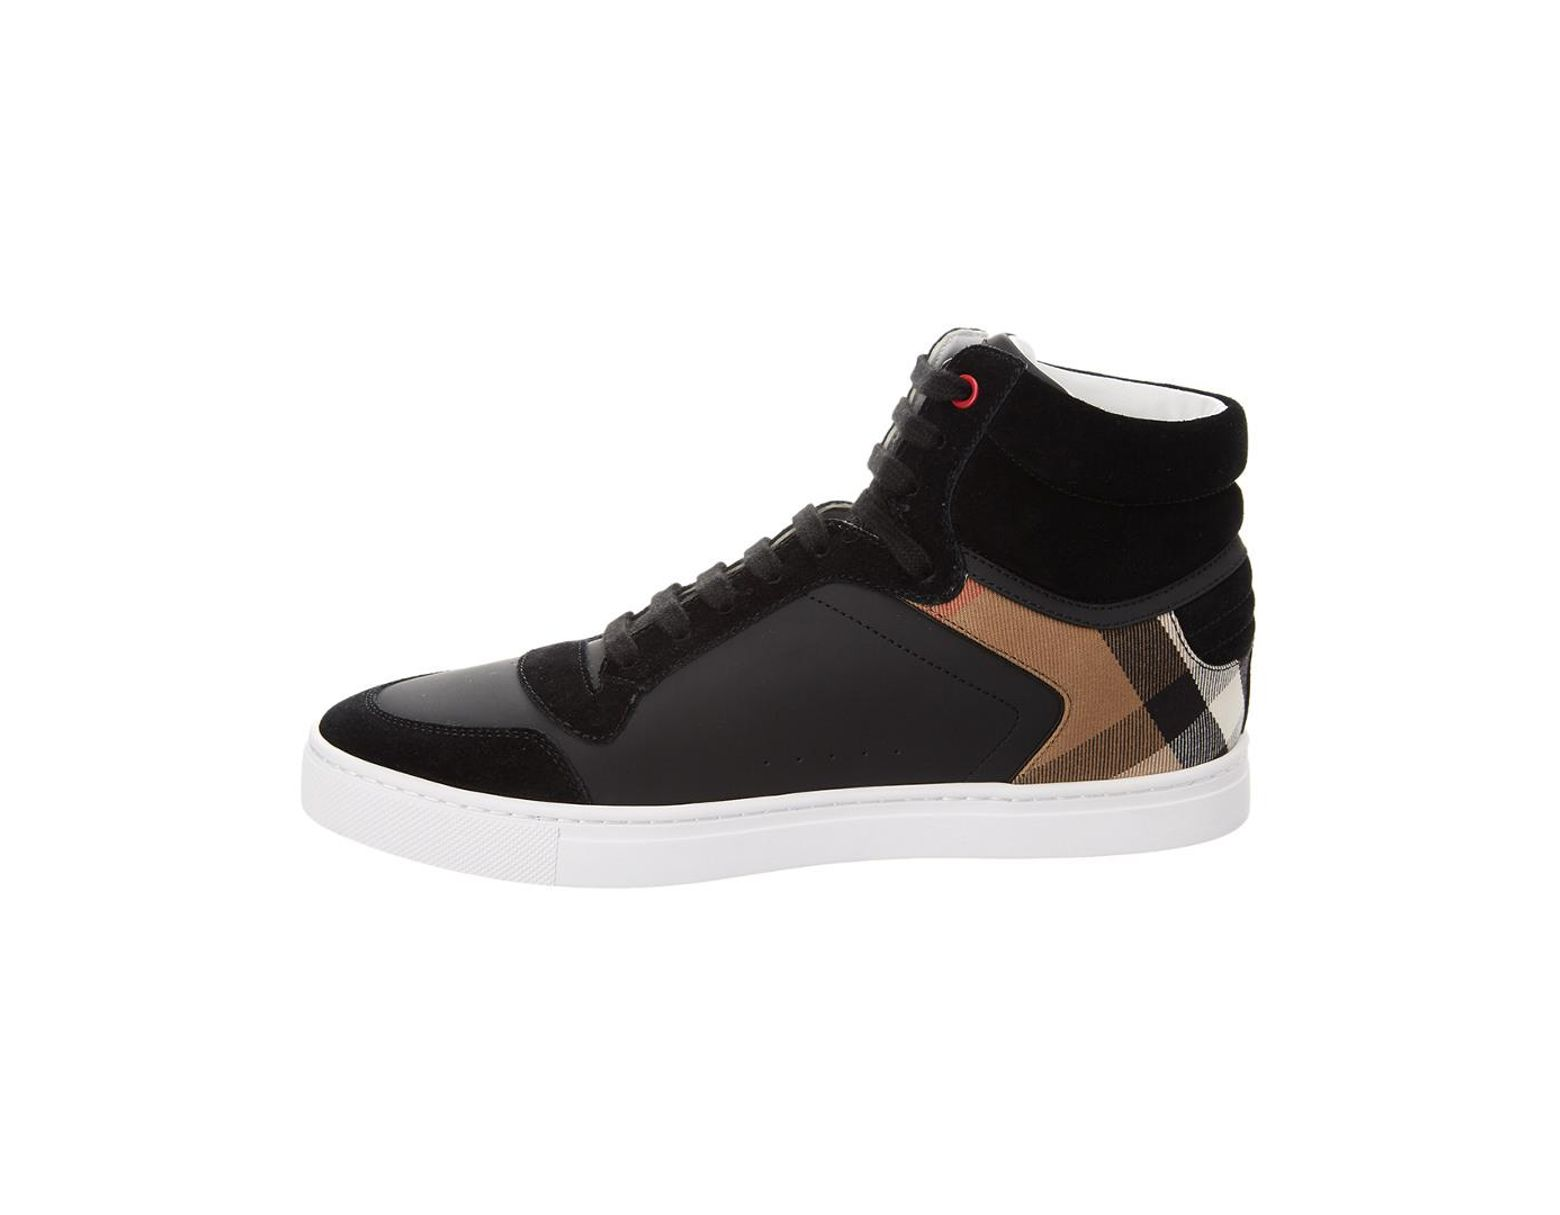 e6869b2ec Burberry Leather High-top Sneakers in Black for Men - Save 39% - Lyst